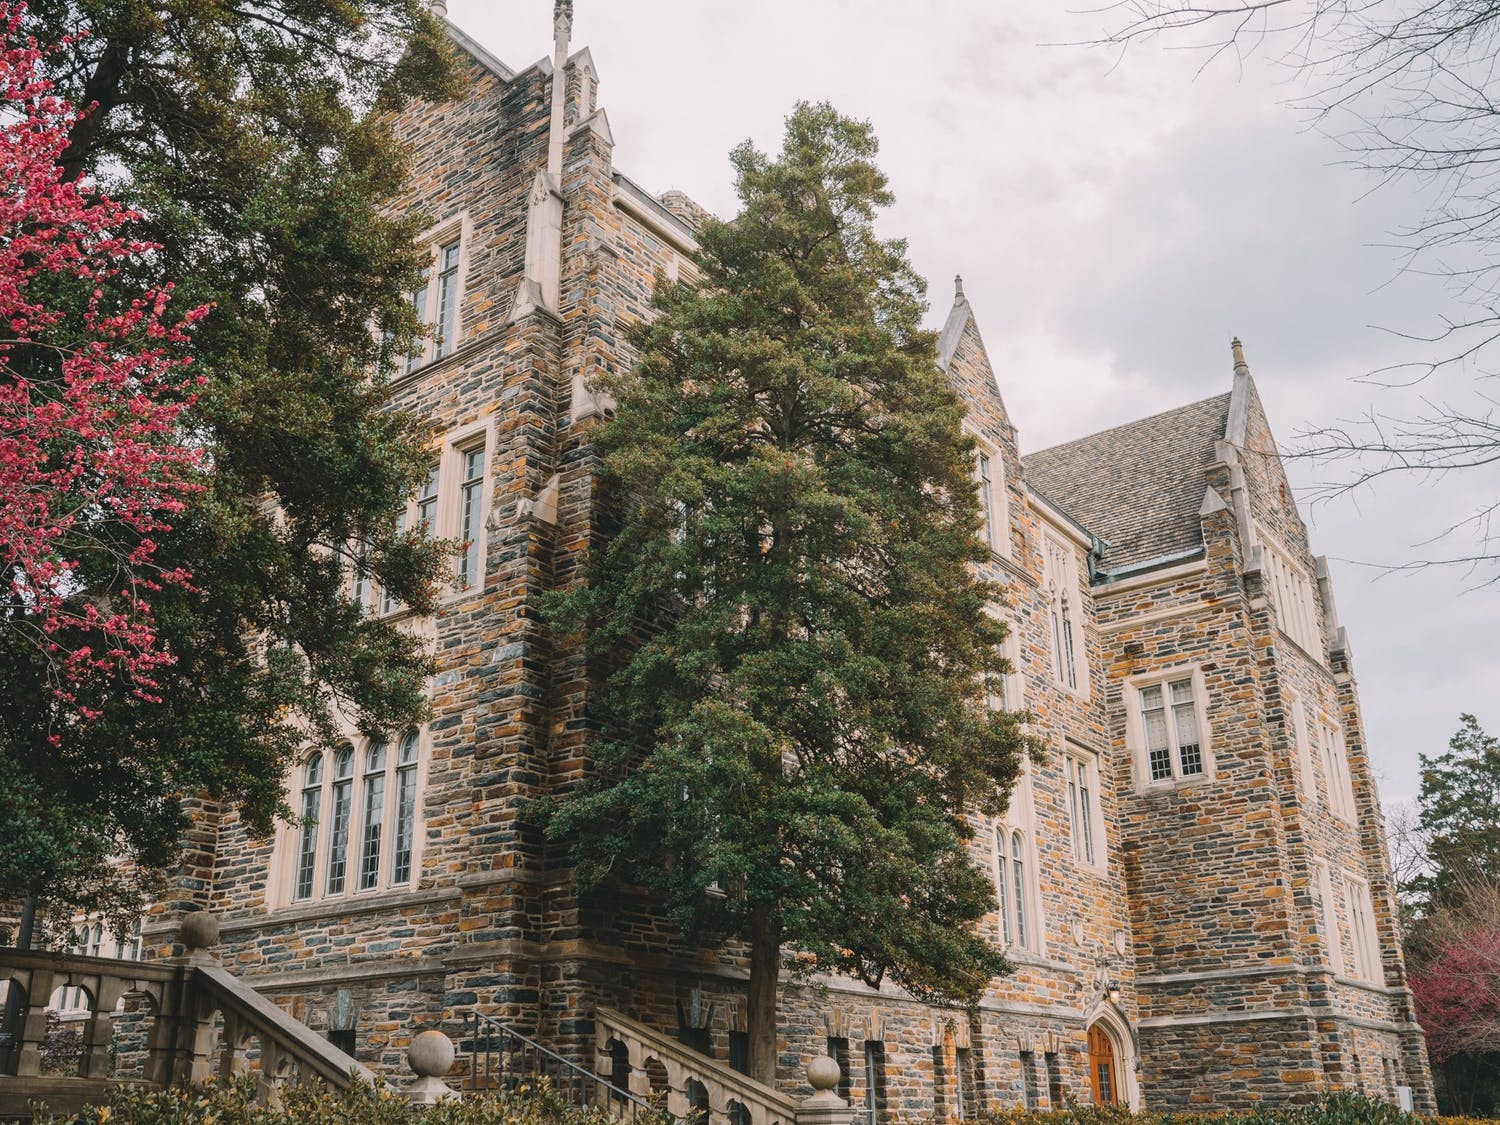 The Reuben-Cooke Building, located on Duke's West Campus, is named after Wilhelmina Reuben-Cooke. She was one of the first five African American undergraduates to attend Duke.